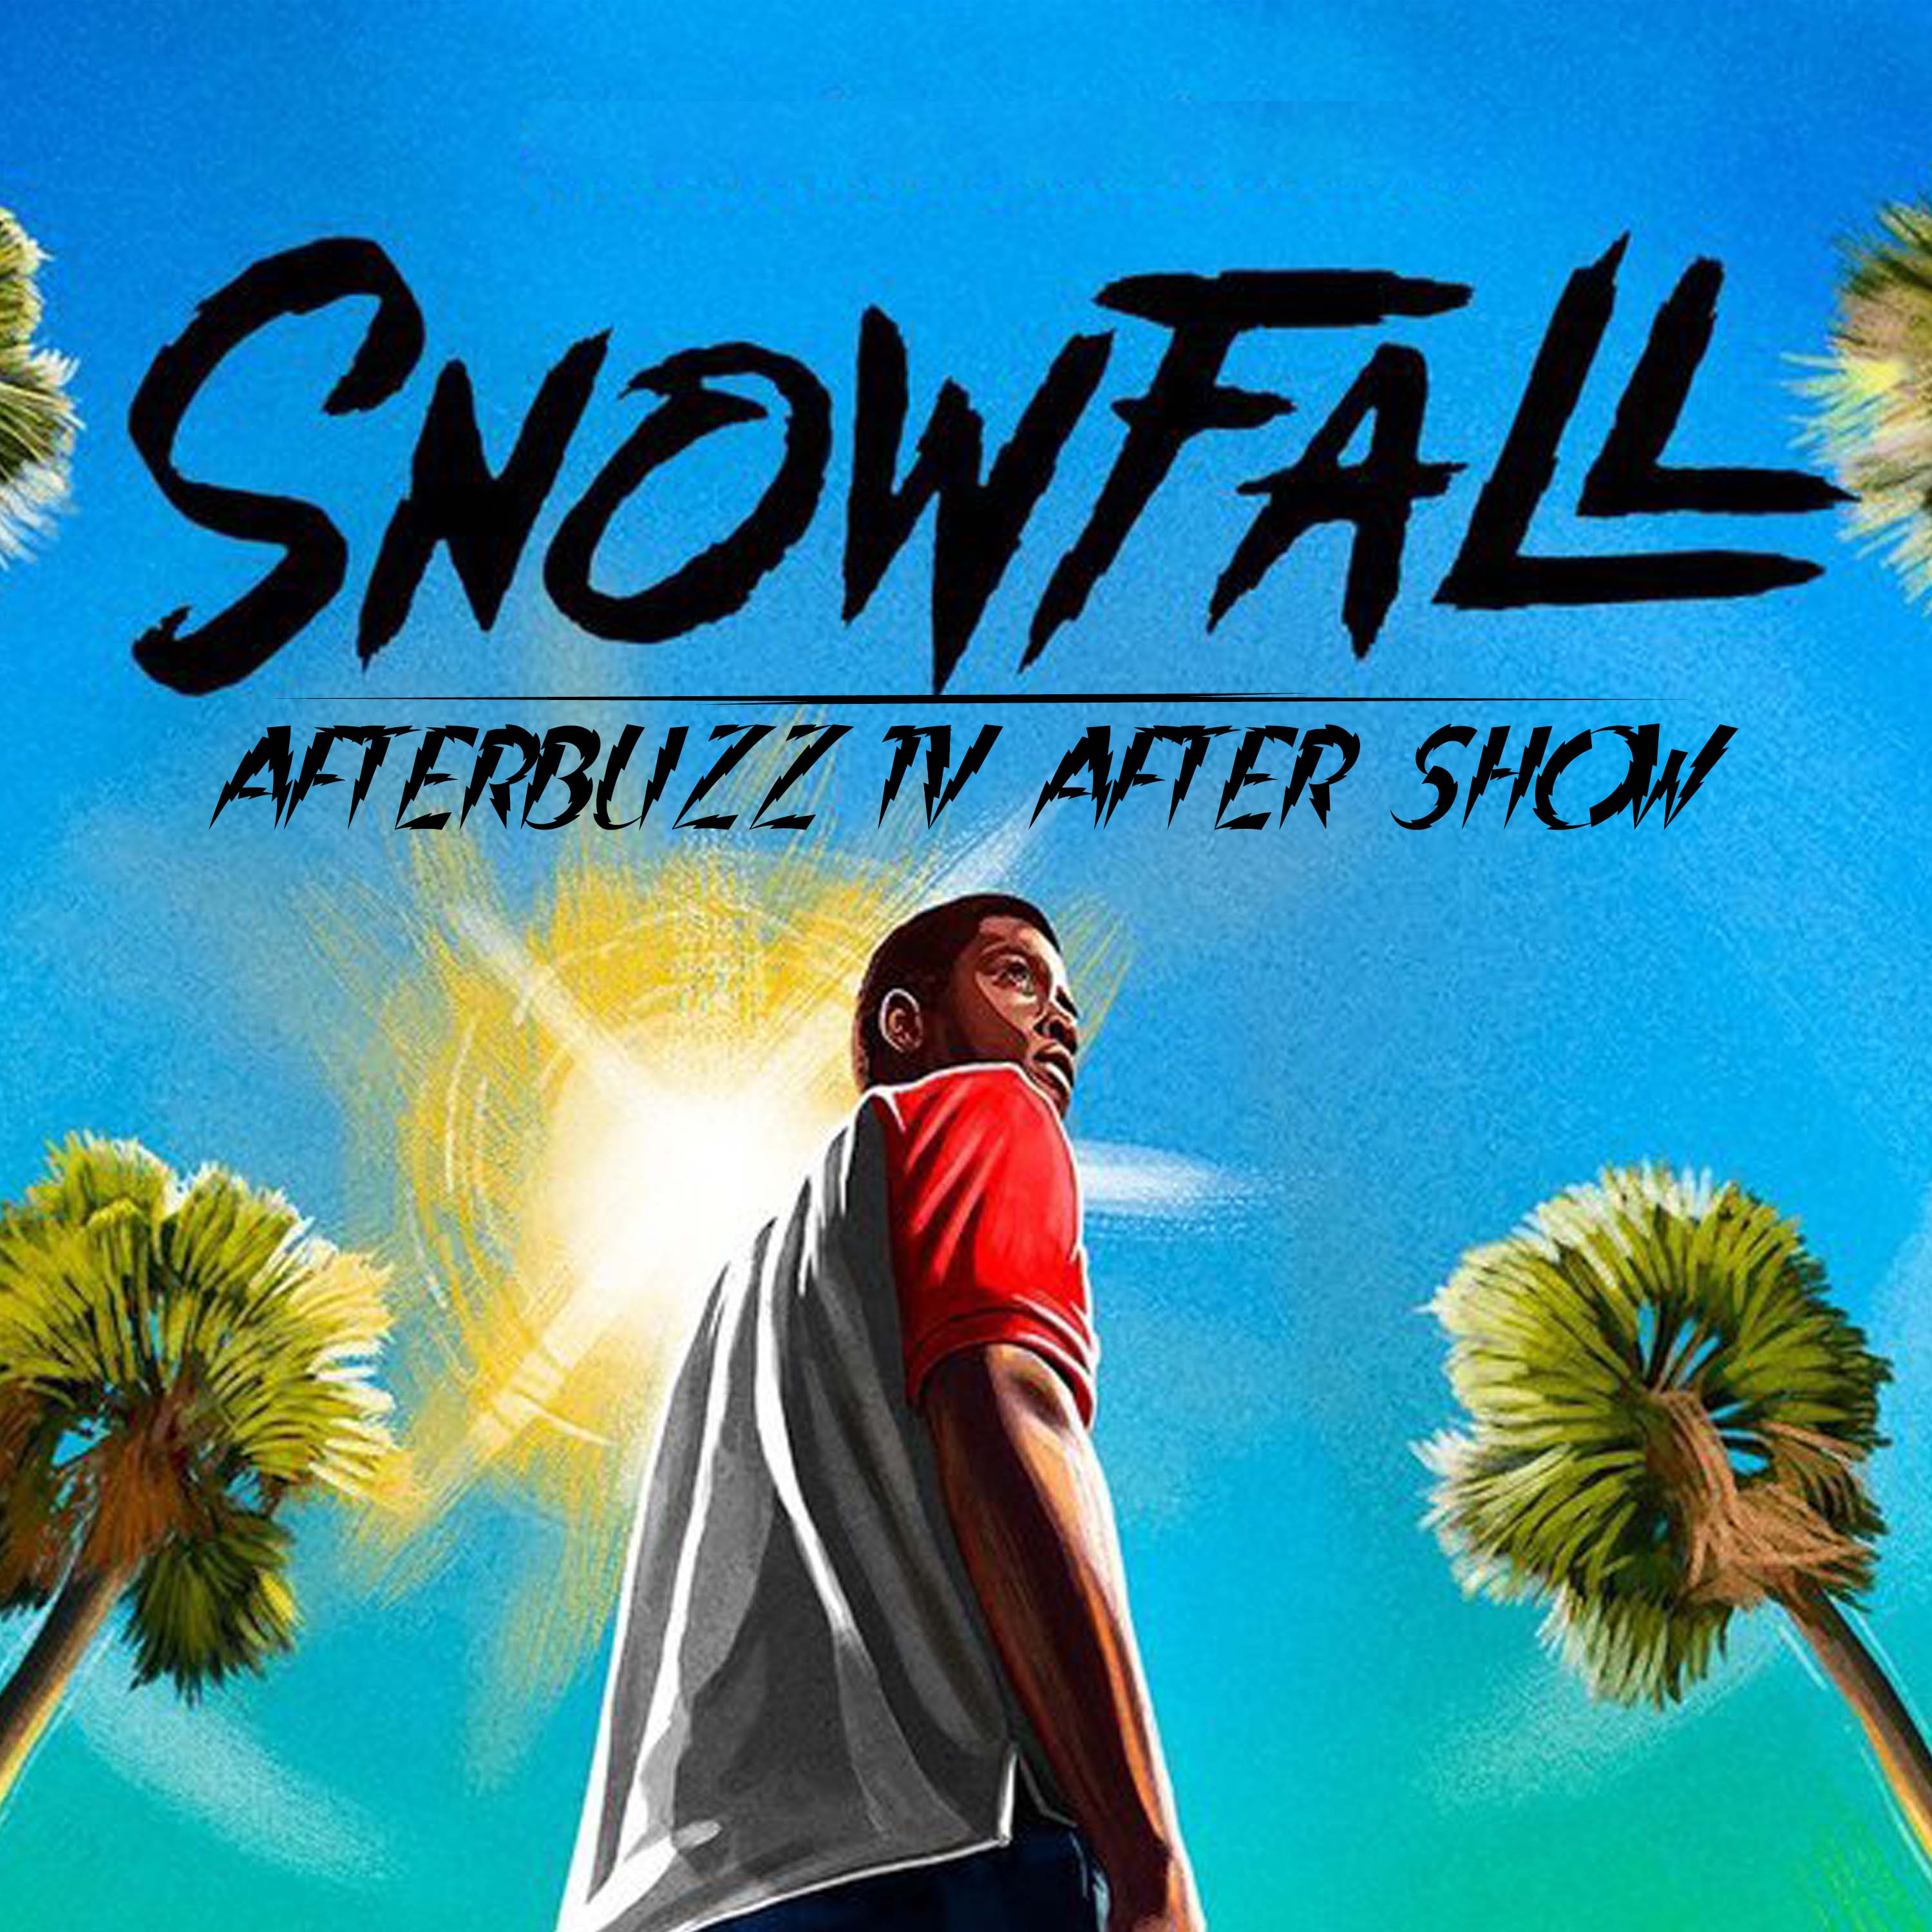 Snowfall After Show